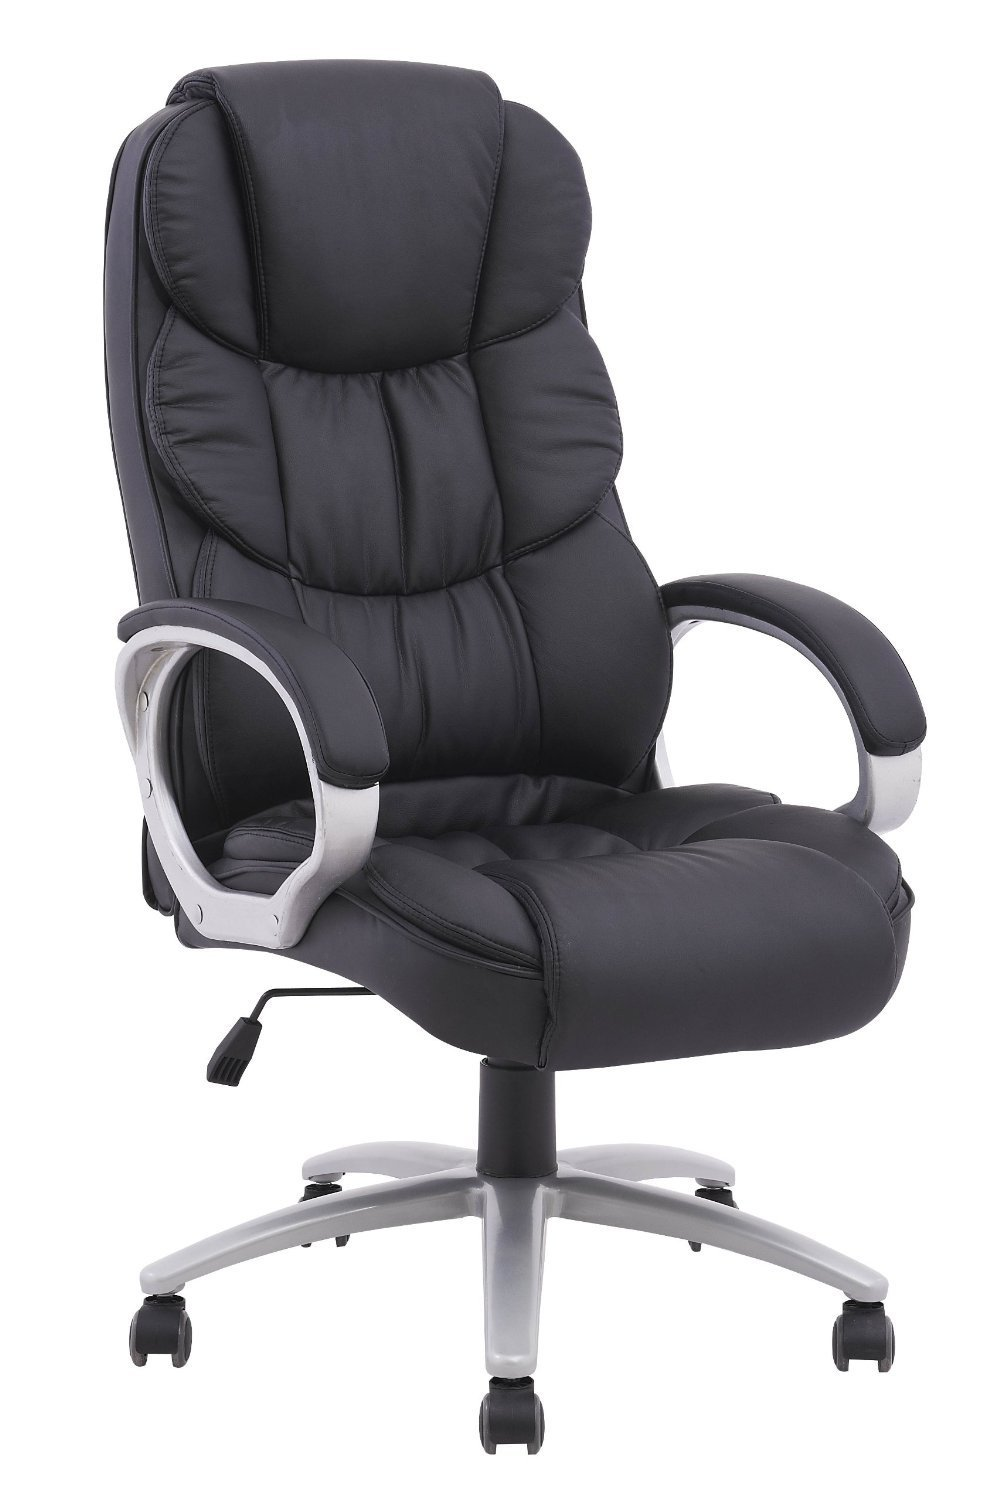 Best Chair For Home Recording Studio